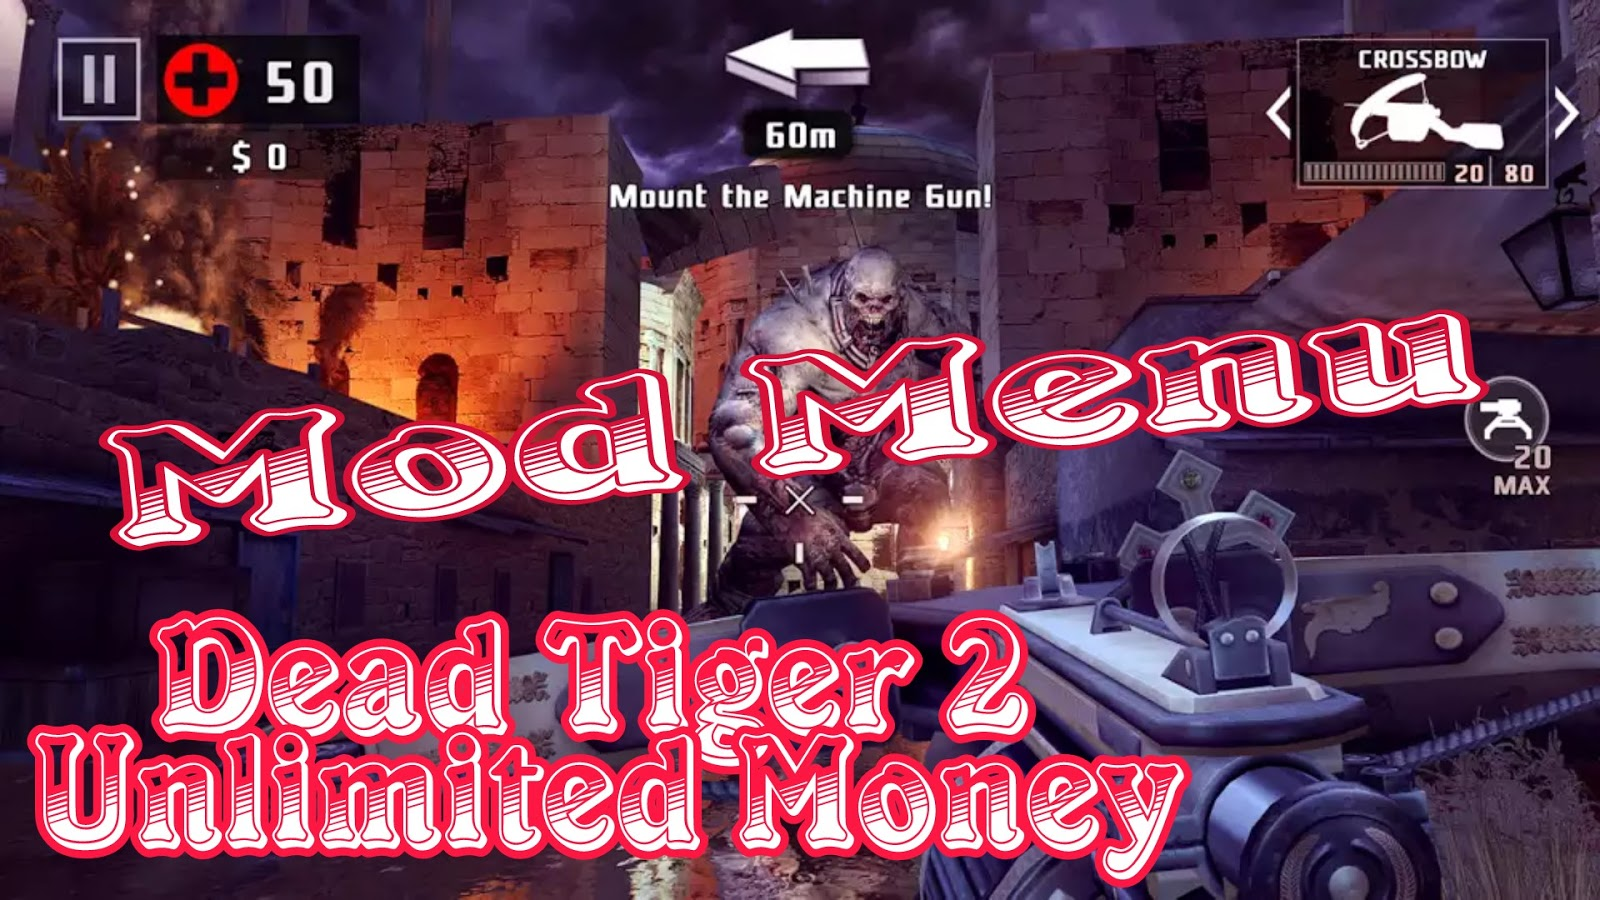 Dead trigger 2 v131 mod menu unlimited money unlimited ammo dead trigger 2 v131 mod menu unlimited money unlimited ammo and more malvernweather Choice Image